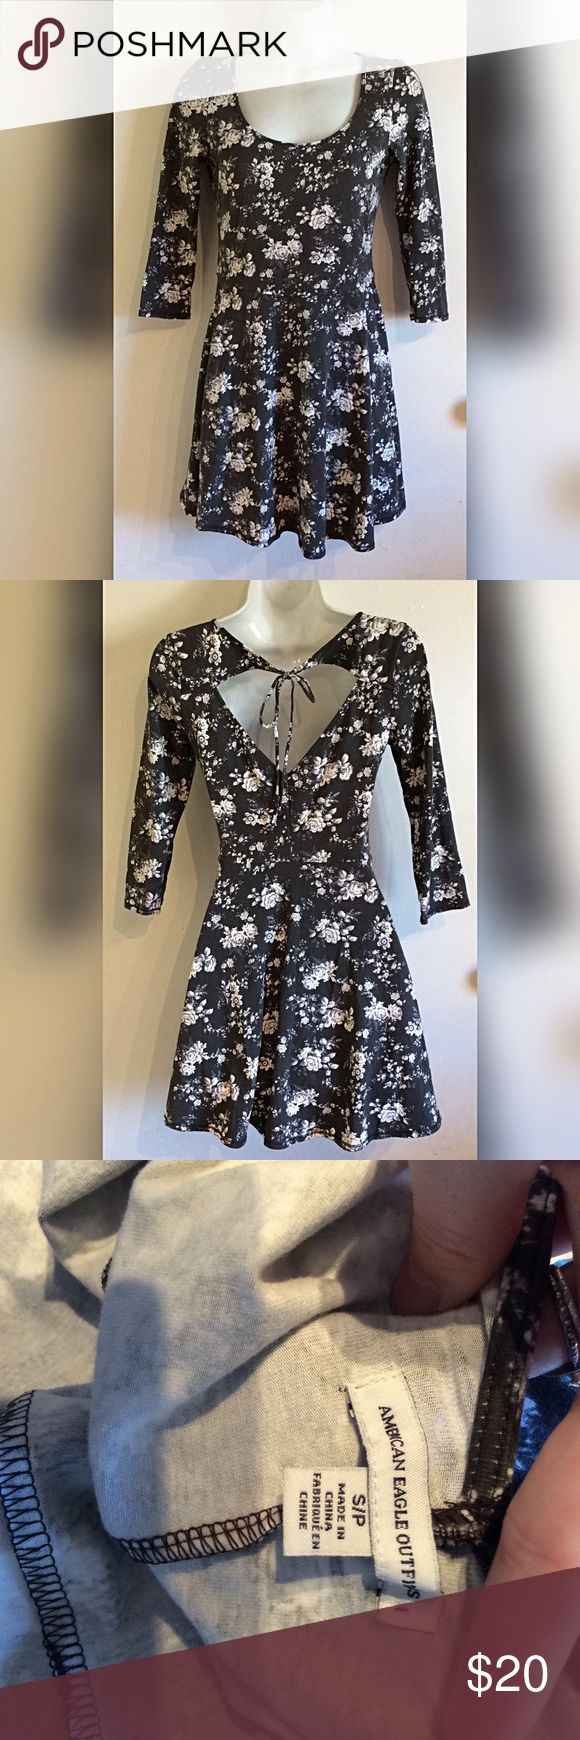 American eagle dress American eagle black and white floral skater dress. Size Small American Eagle Outfitters Dresses Mini